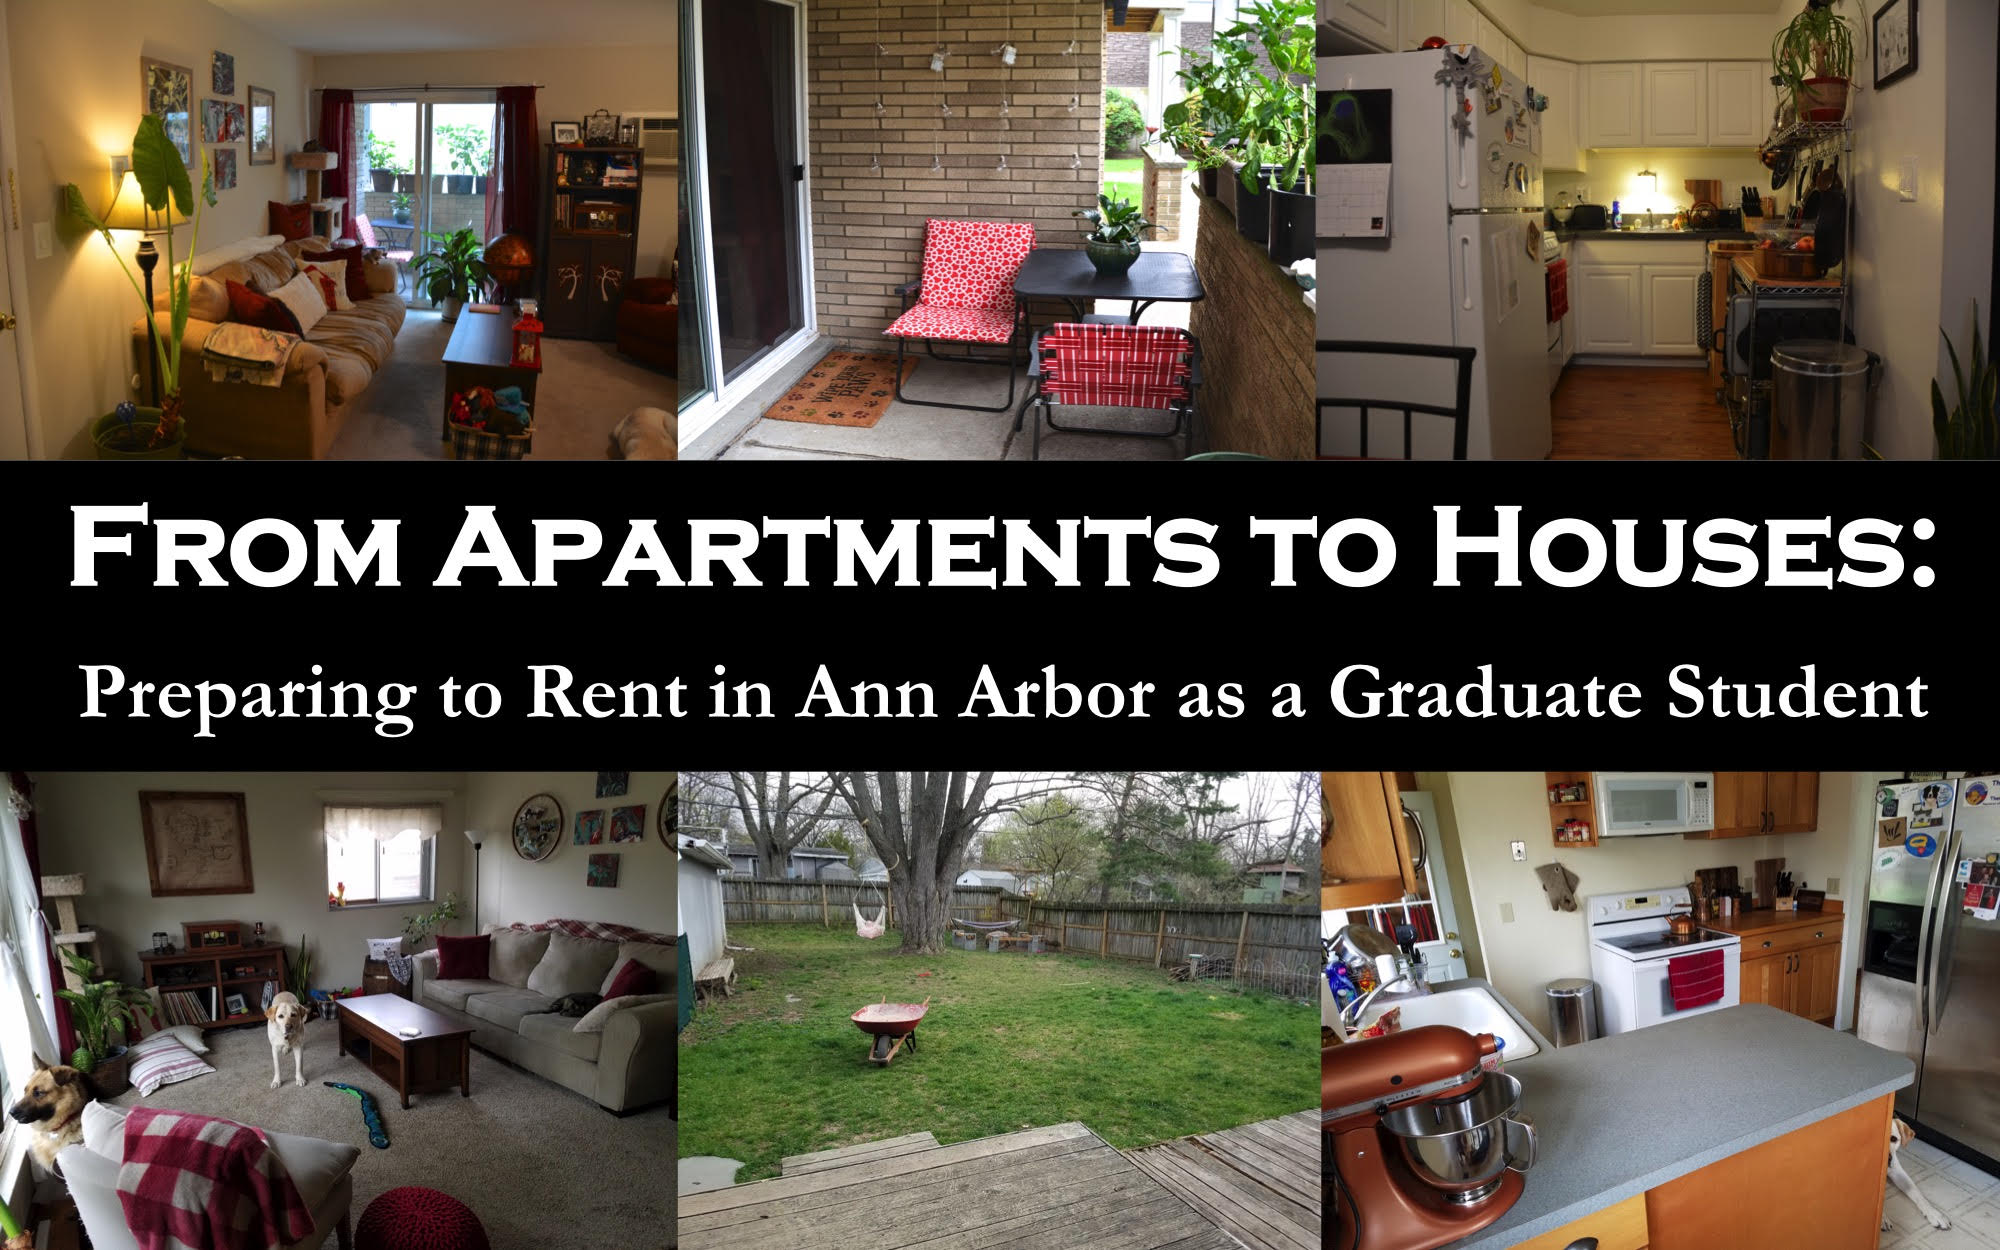 Apartments to Houses: Preparing to Rent in Ann Arbor as a Graduate Student